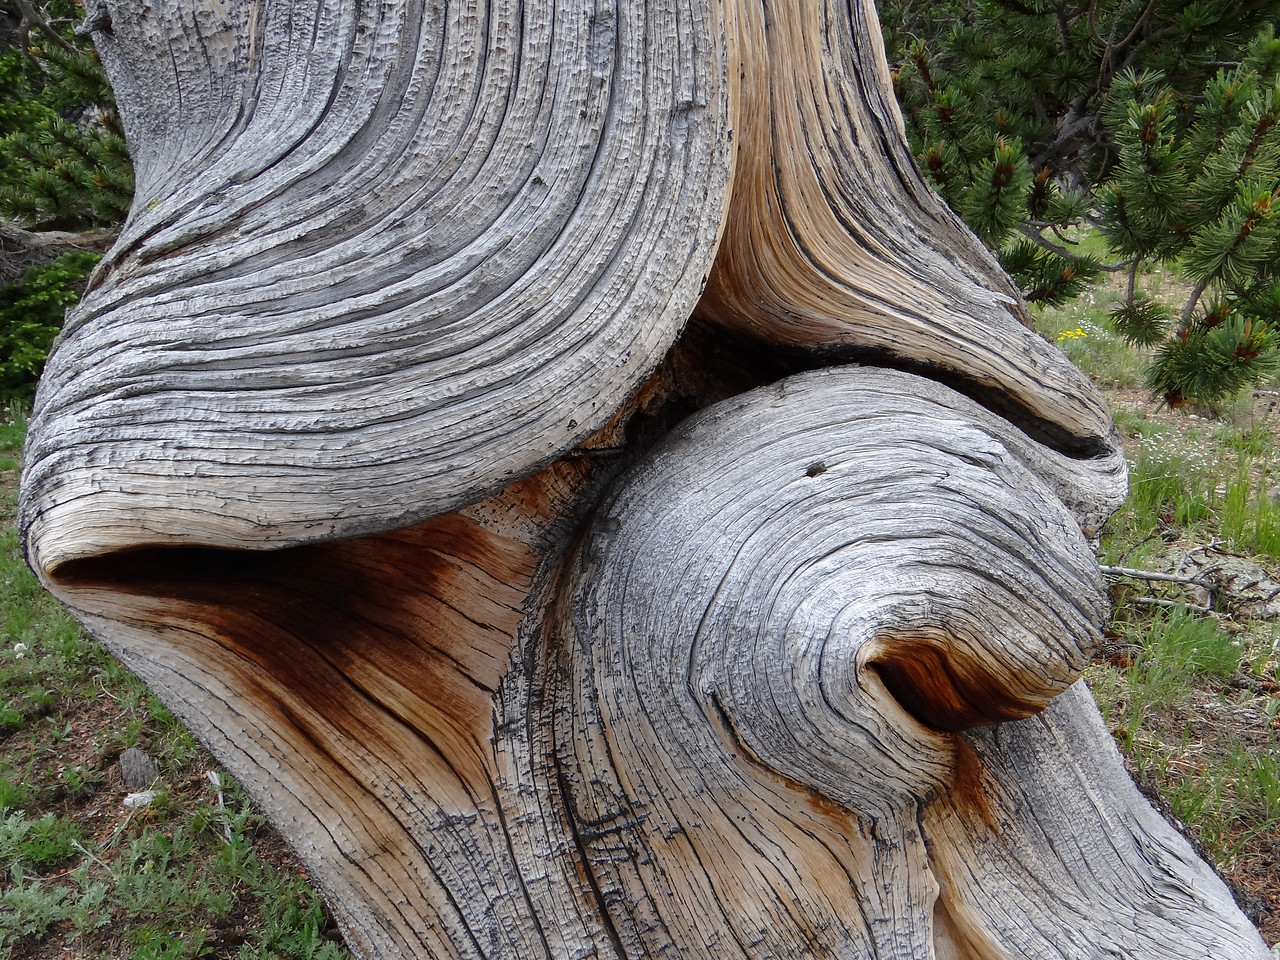 The phantasmagoric shapes of ancient Bristlecone Pines